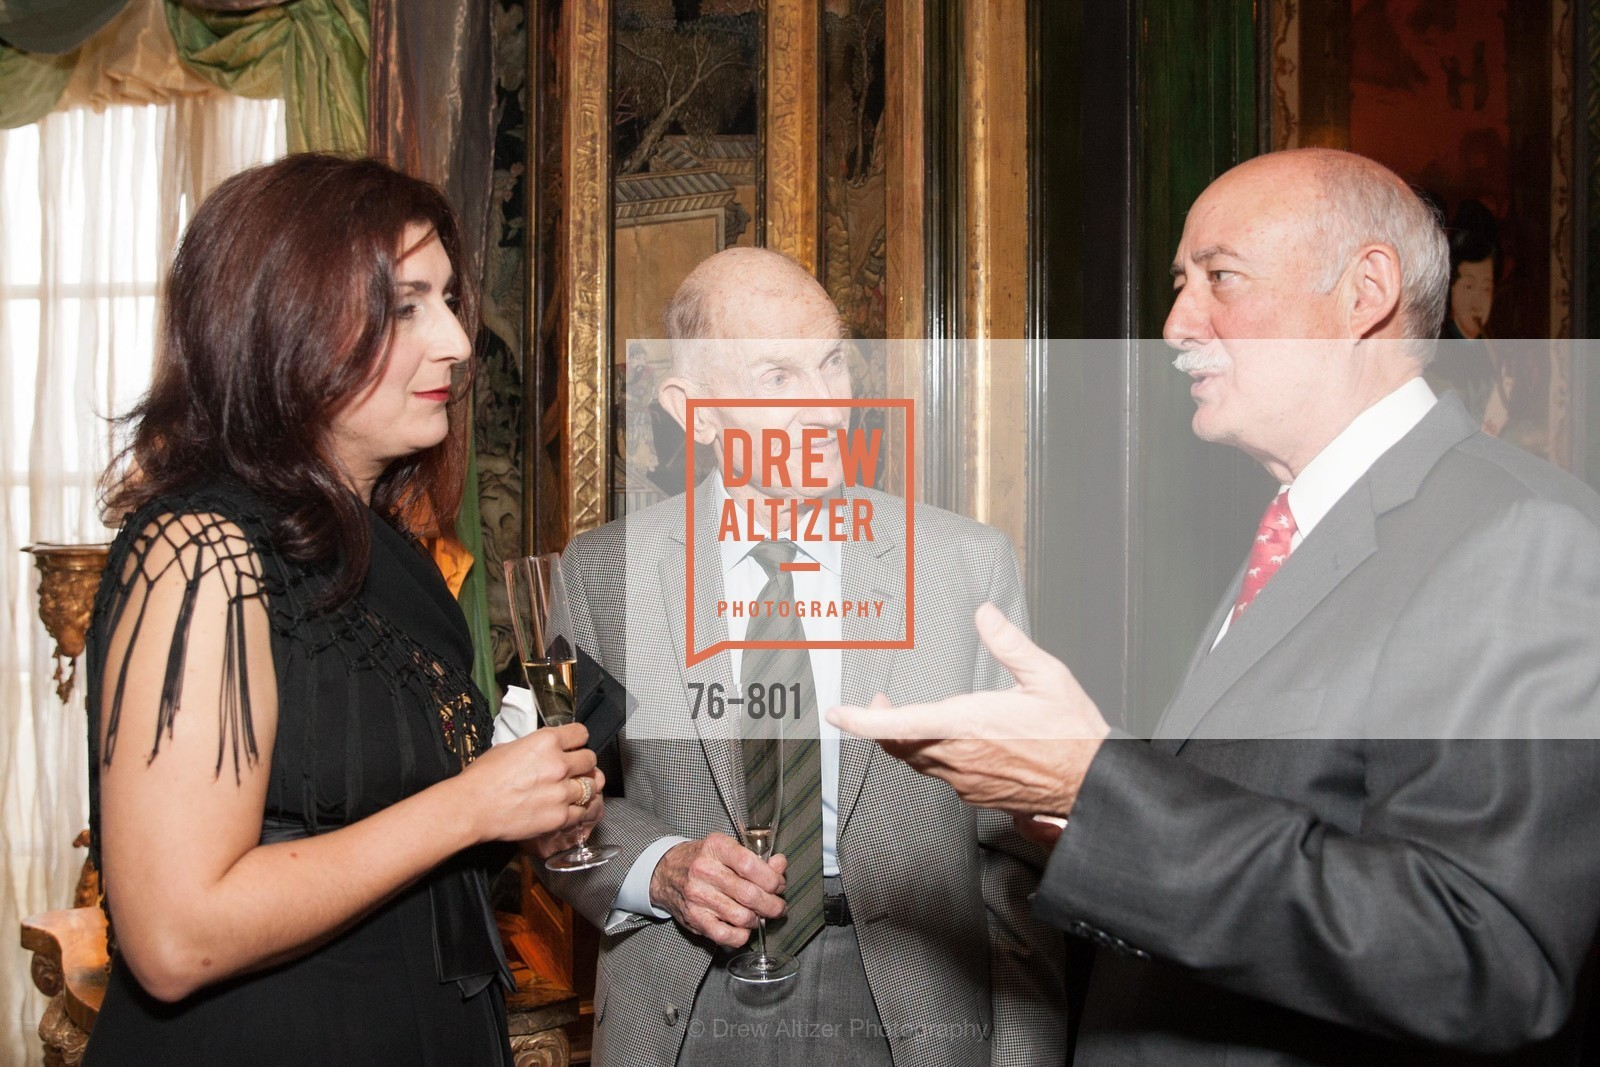 Anna Bayat King, Rick Stokes, Don Dana, GETTY Hosts Leakey Foundation Dinner, US, April 23rd, 2015,Drew Altizer, Drew Altizer Photography, full-service agency, private events, San Francisco photographer, photographer california